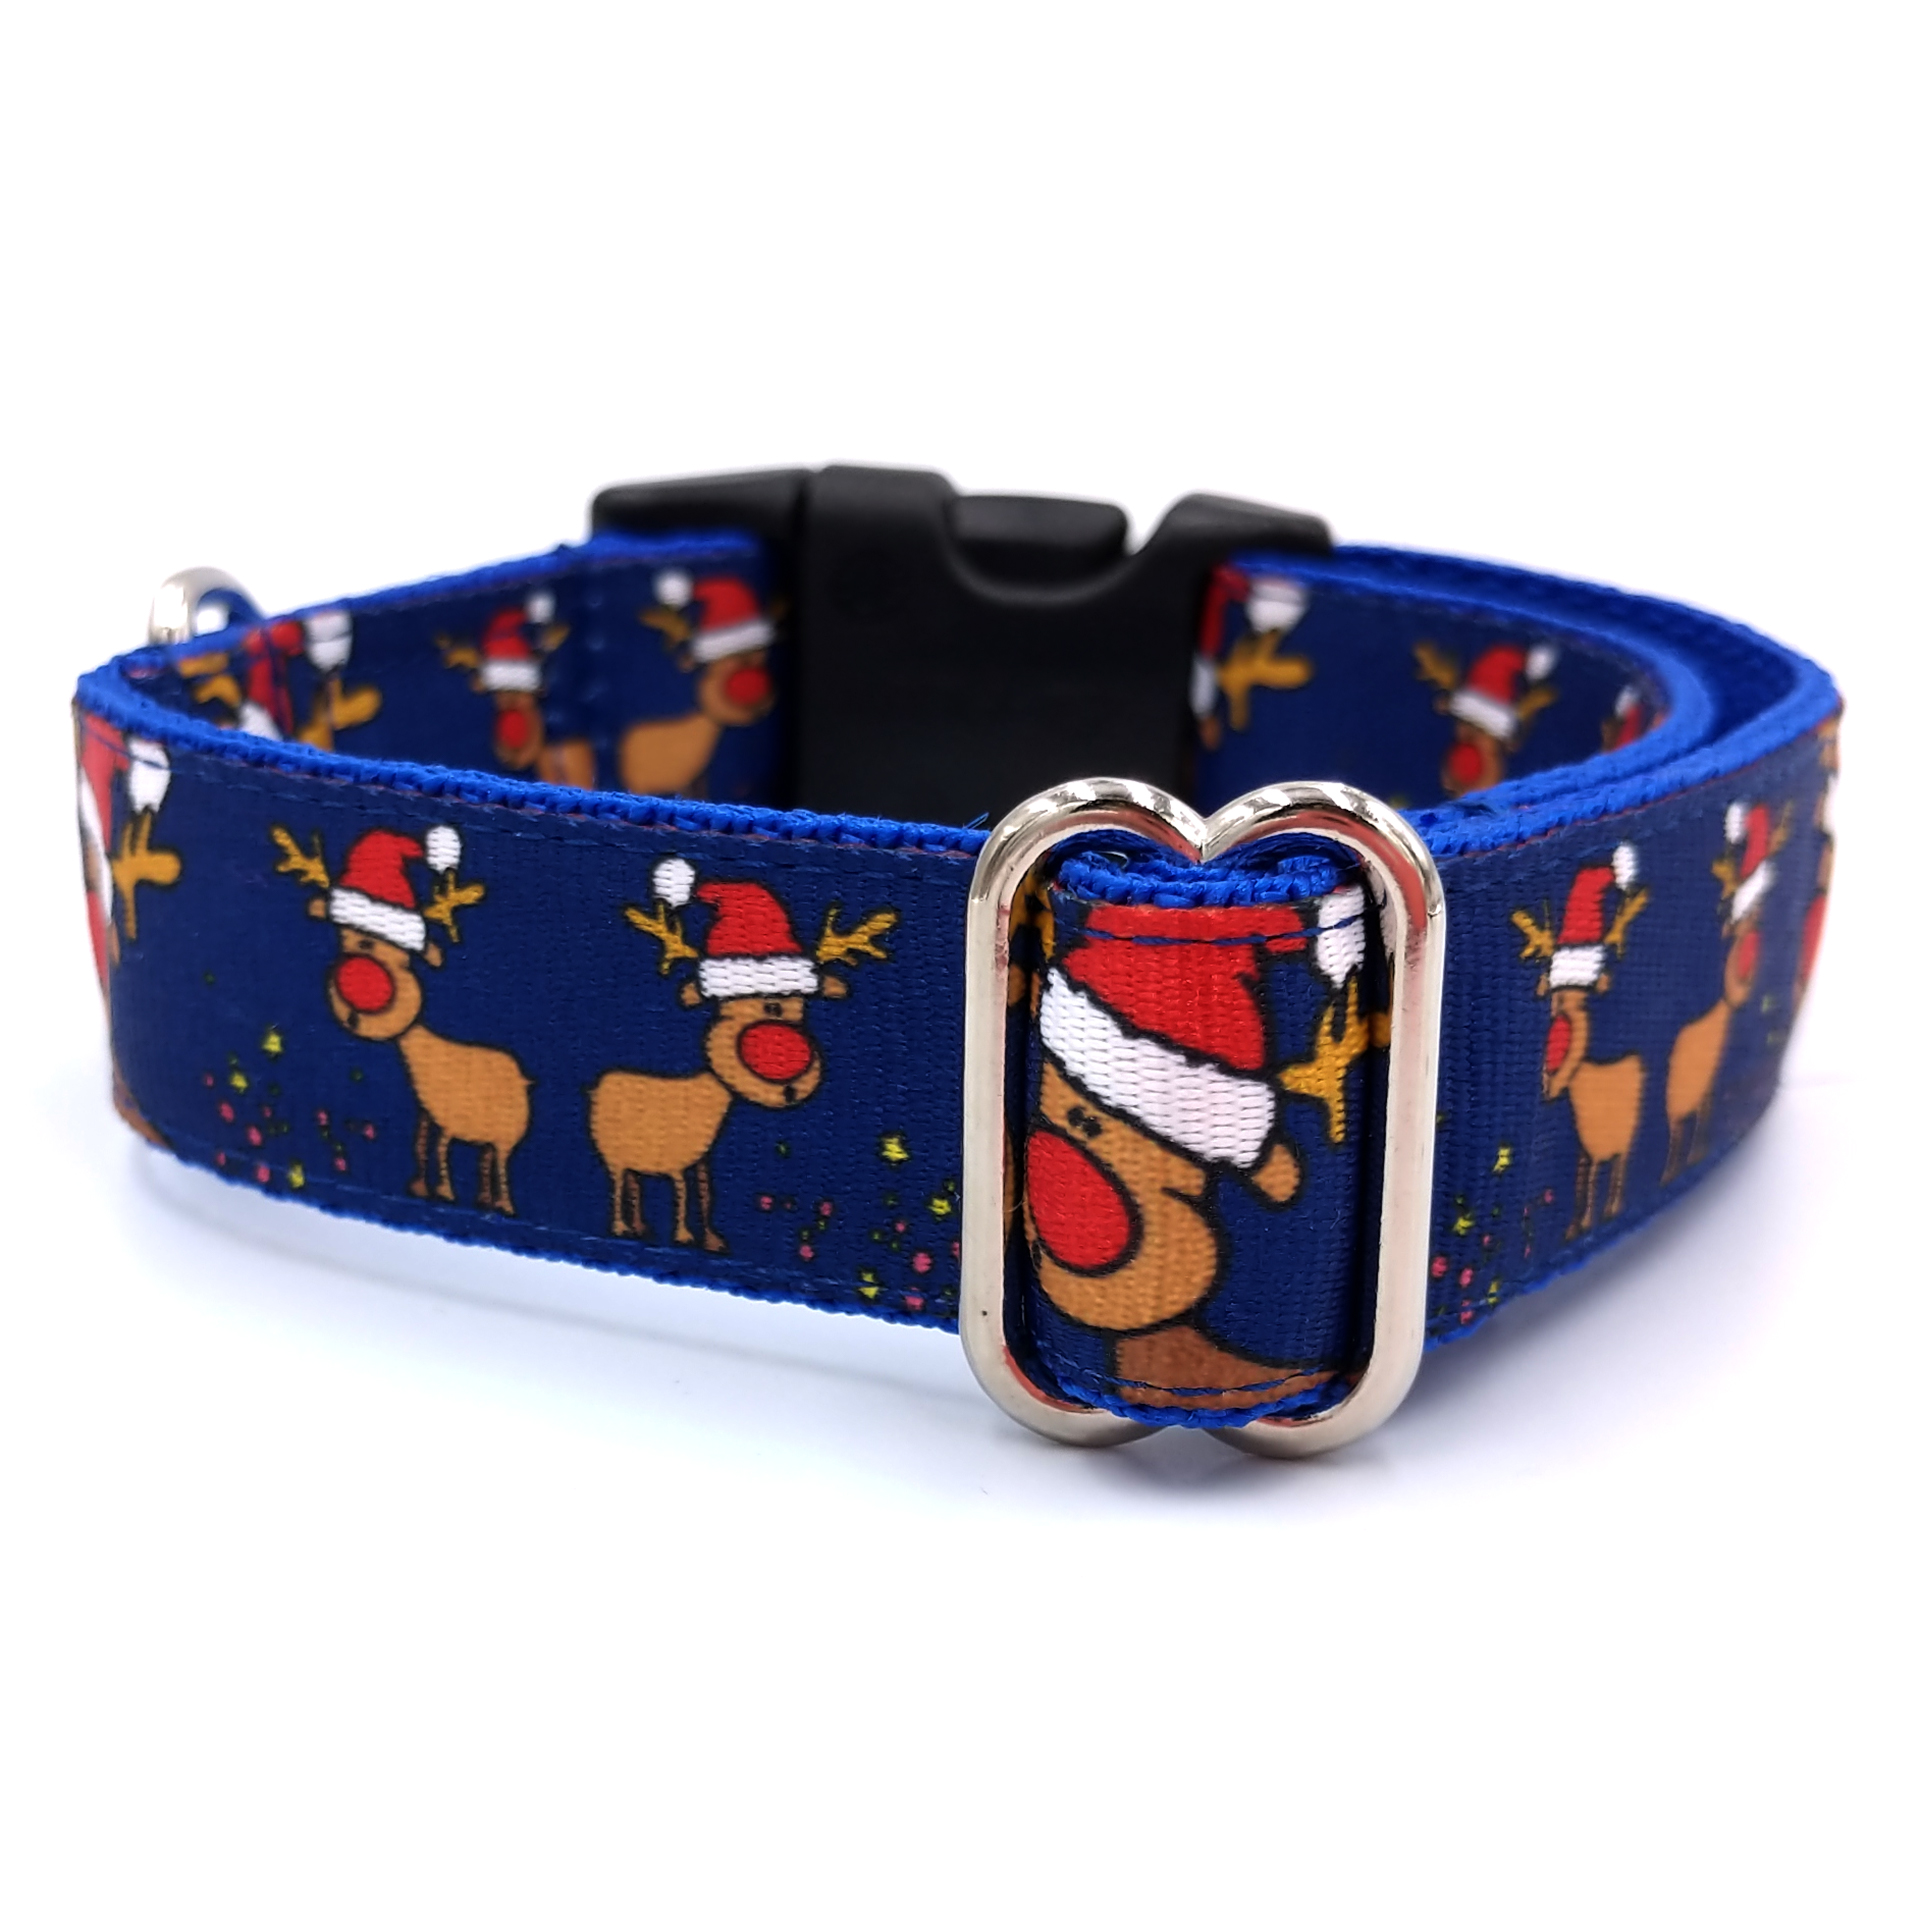 Rudolph blue dog collar